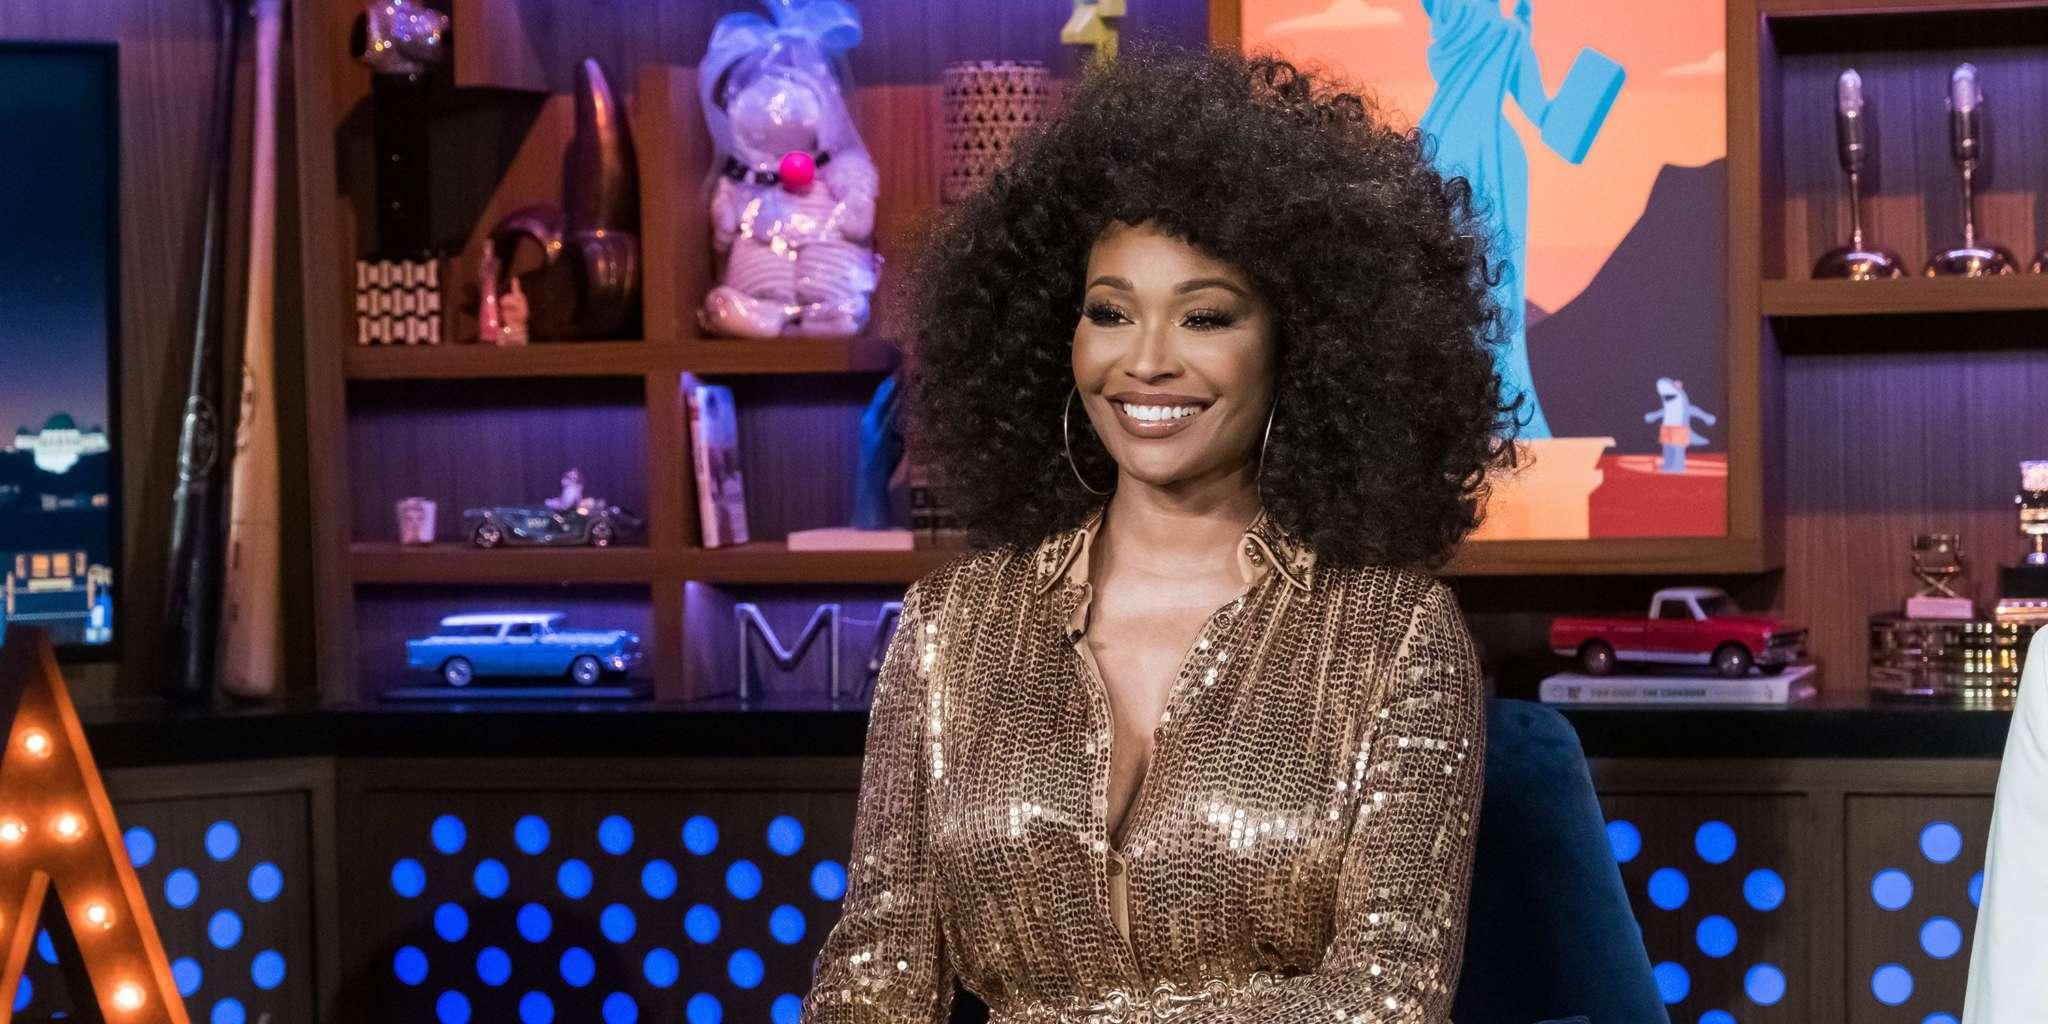 Cynthia Bailey And Her Family Took Part In A Peaceful Protest: 'It Was Emotional, But Very Inspiring'